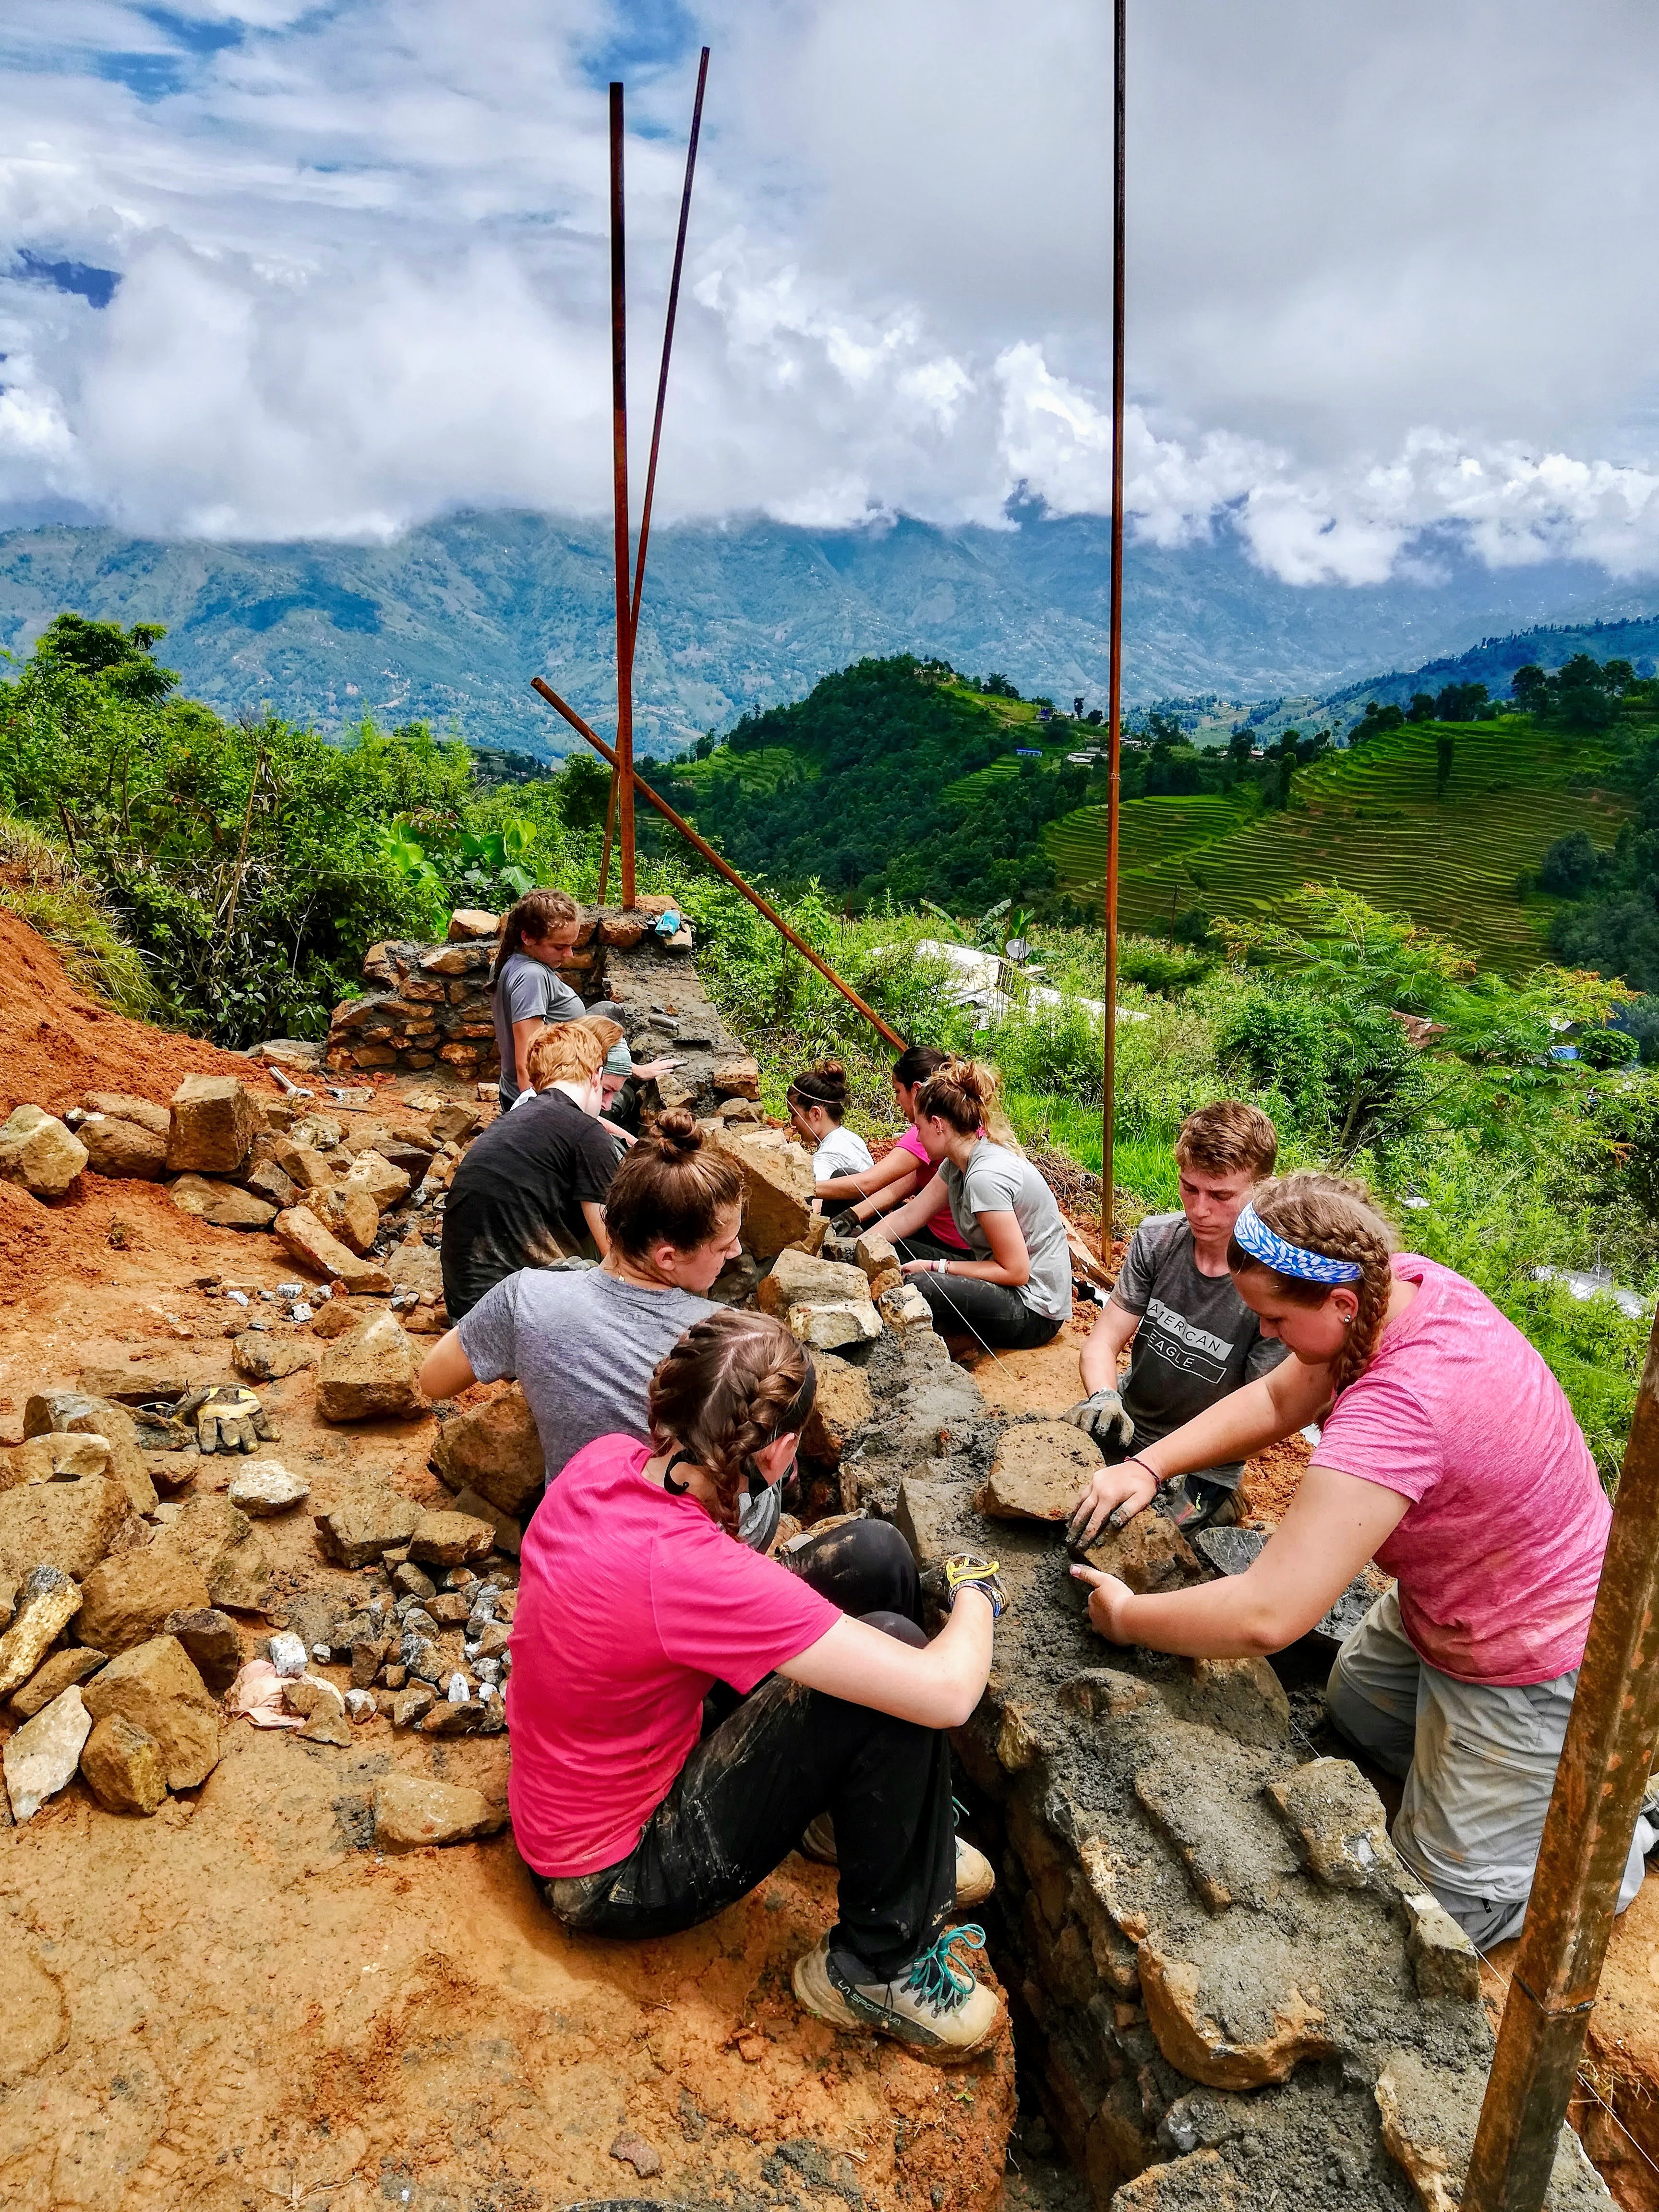 Summer Program - Community Center | Global Routes Nepal: Trekking and Service